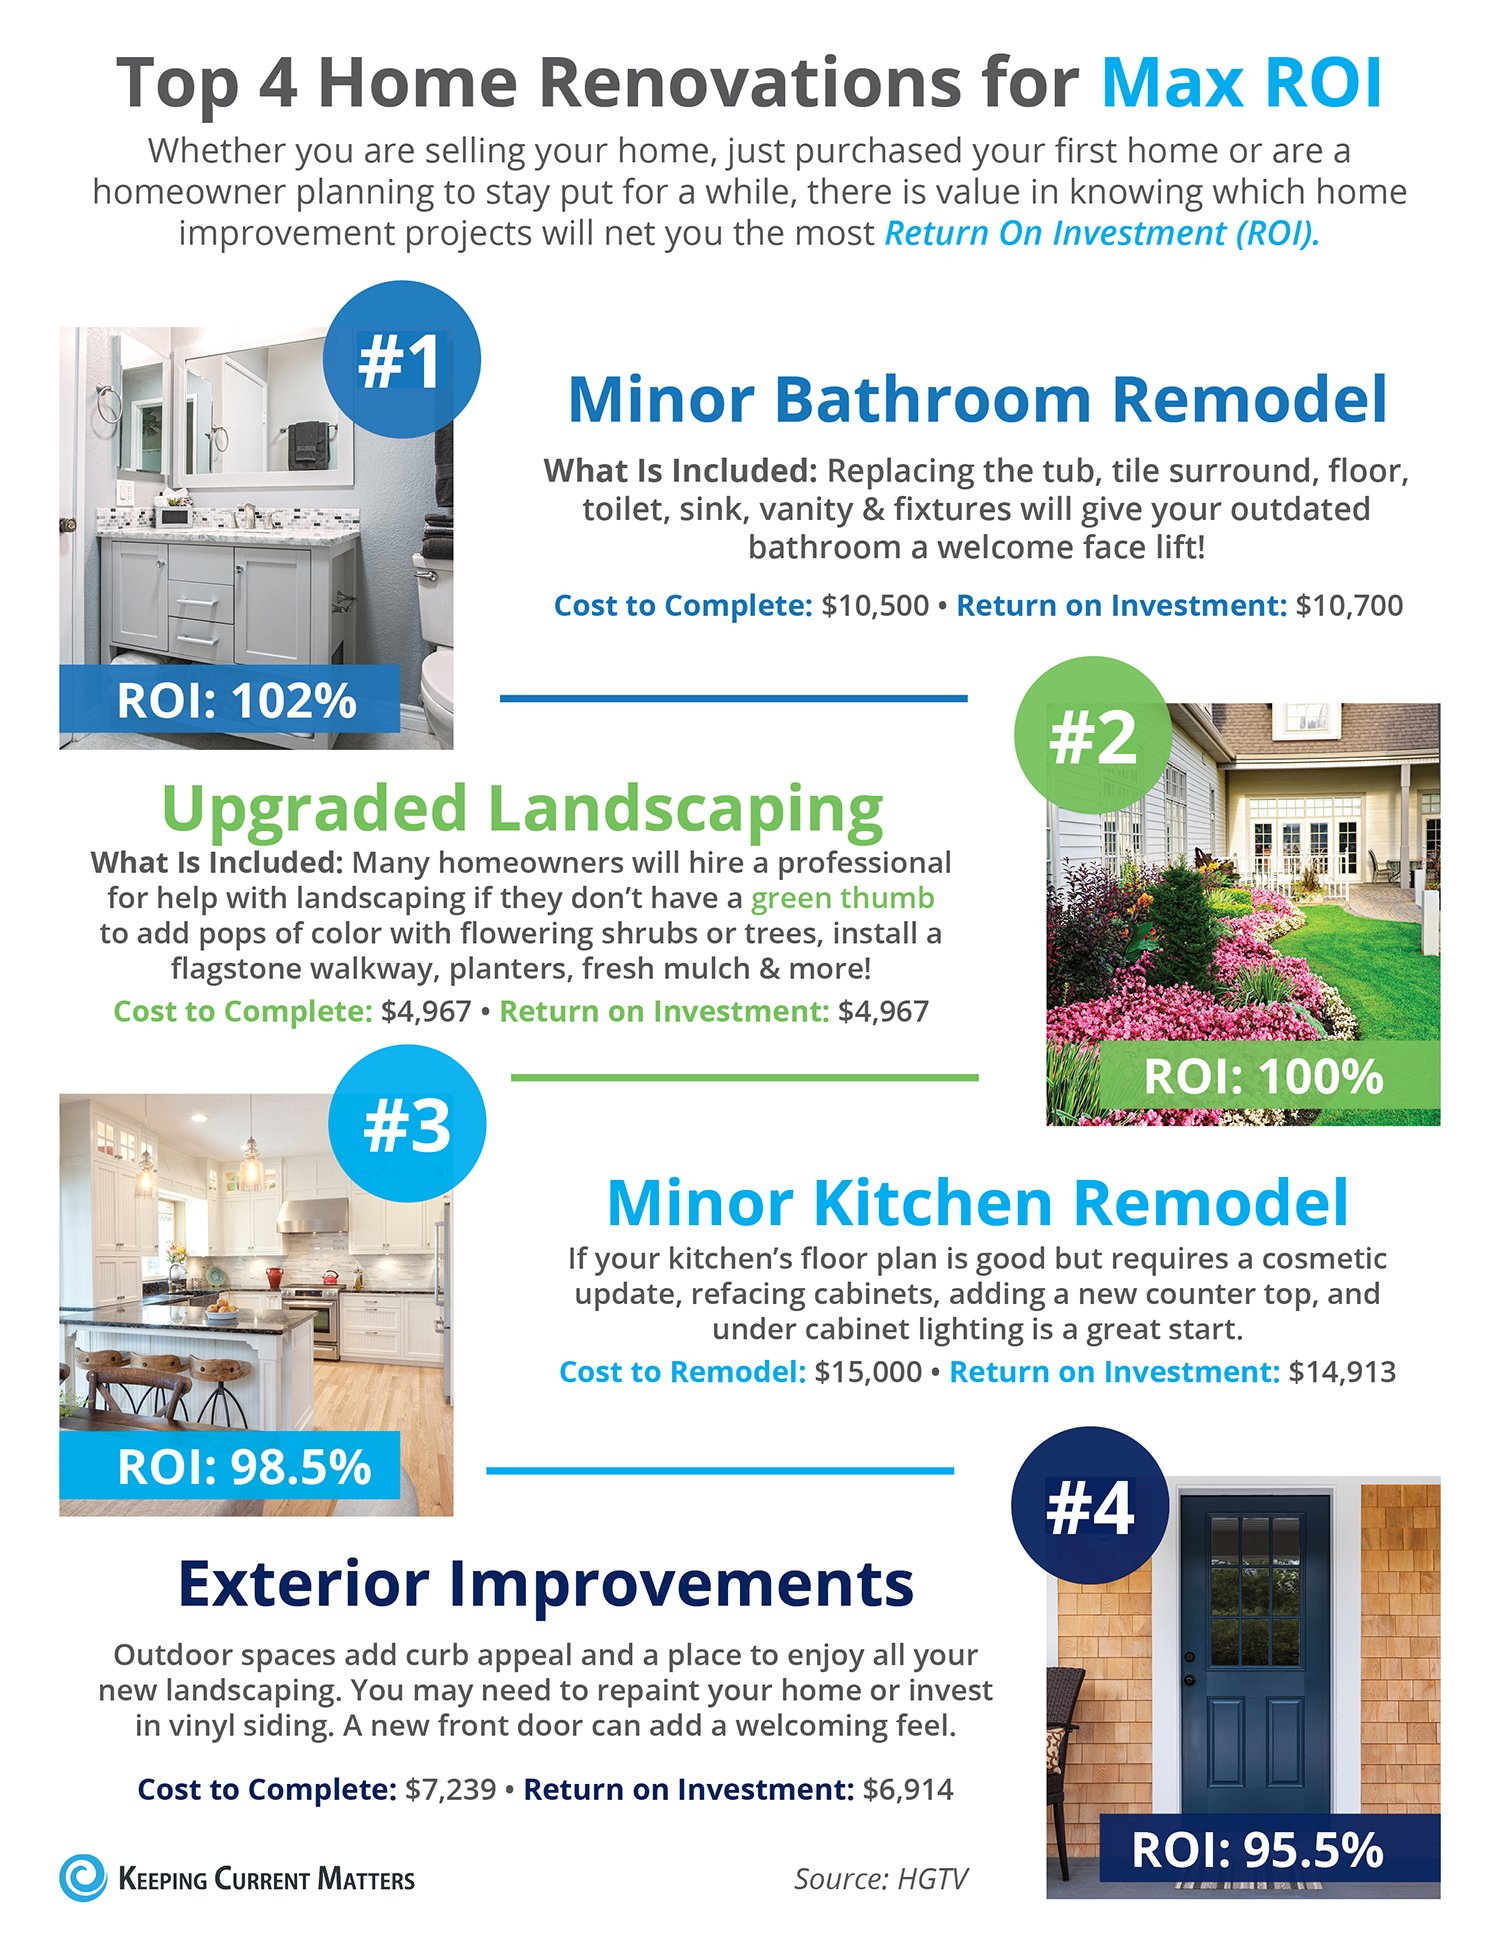 Top 4 Home Renovations for Max ROI [INFOGRAPHIC] | Keeping Current Matters